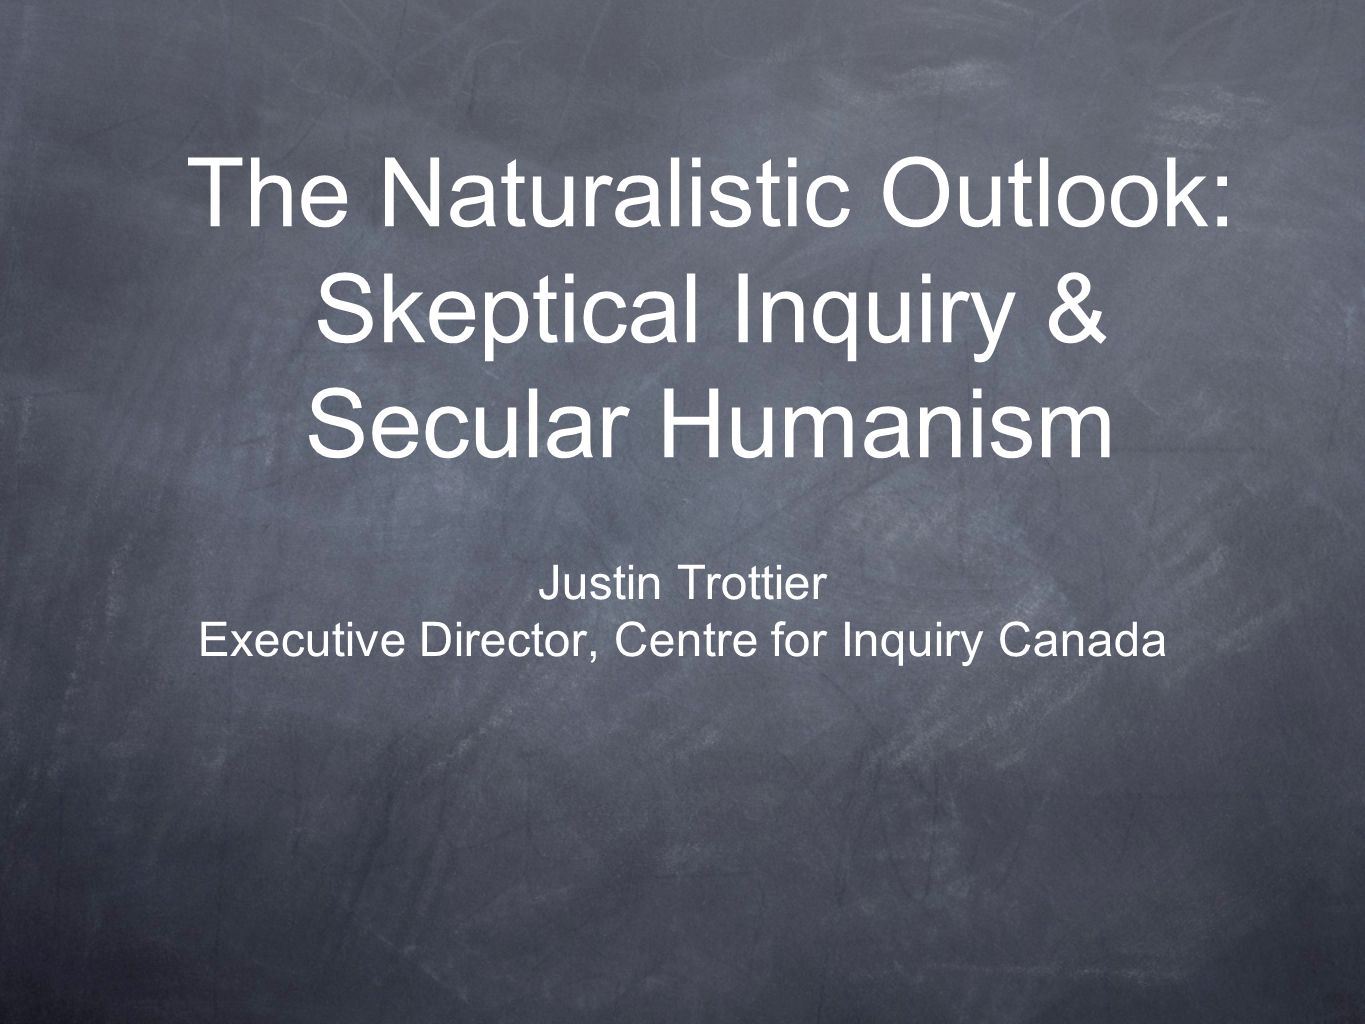 The Naturalistic Outlook: Skeptical Inquiry & Secular Humanism Justin Trottier Executive Director, Centre for Inquiry Canada